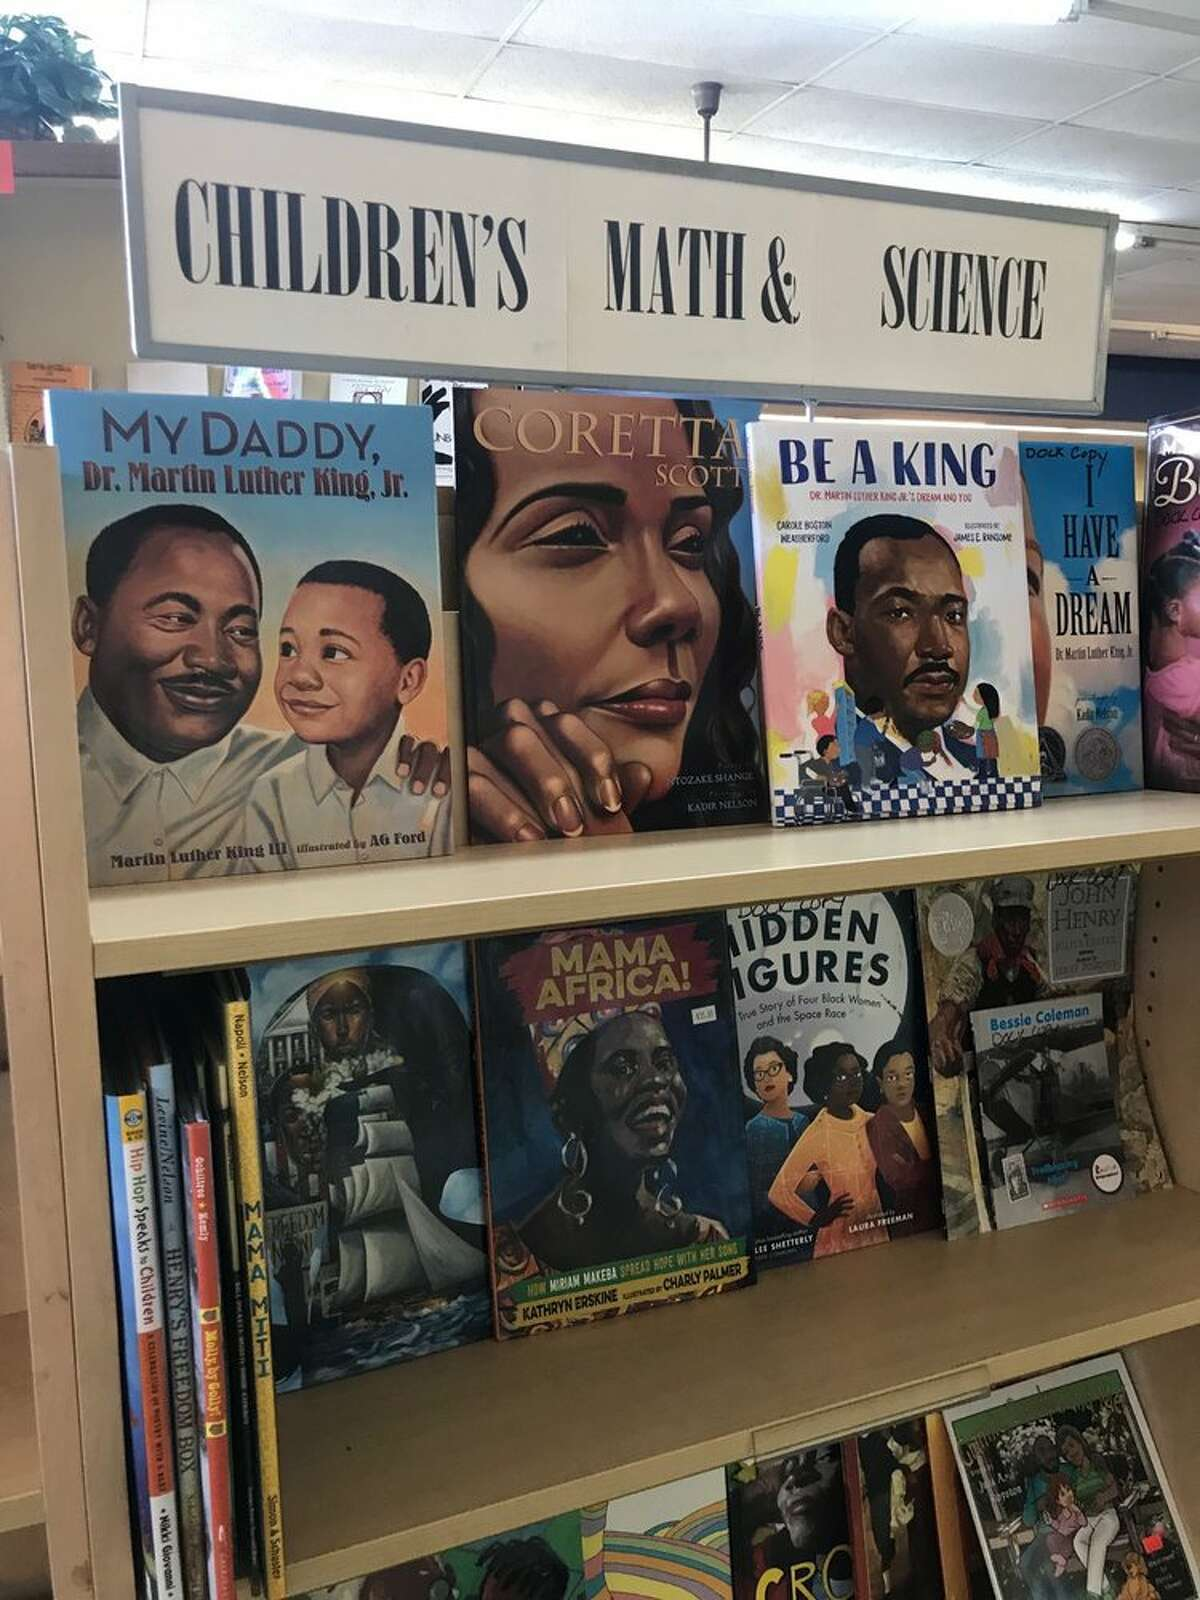 The Dock Bookshop -- Fort Worth, Texas This bookstore opened back in 2008 and and is now one of the largest independent, full service, African-American owned bookstores in Texas and the Southwest. thedockbookshop.com;Photo: Lynne T.Yelp